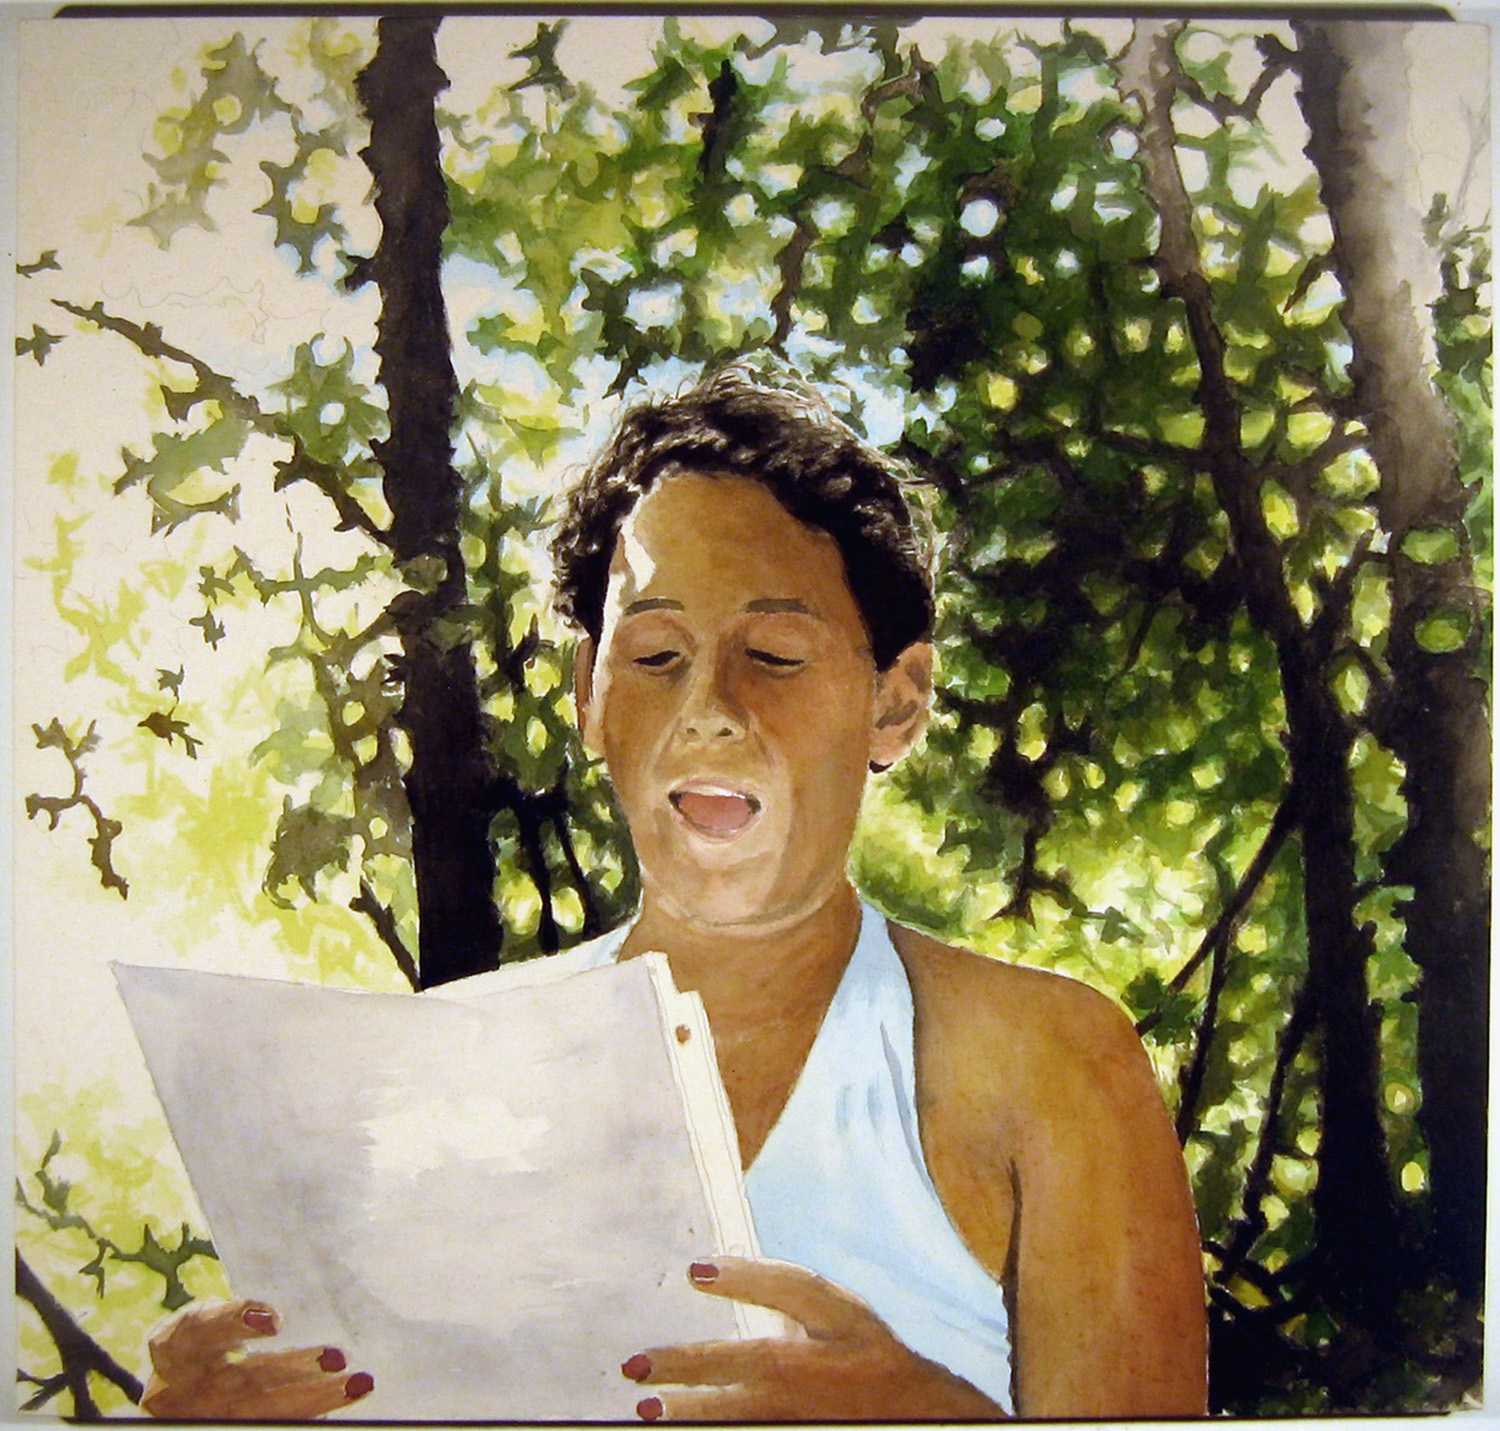 Darcie Reading, 2006, acrylic on canvas, 38 x 40 in